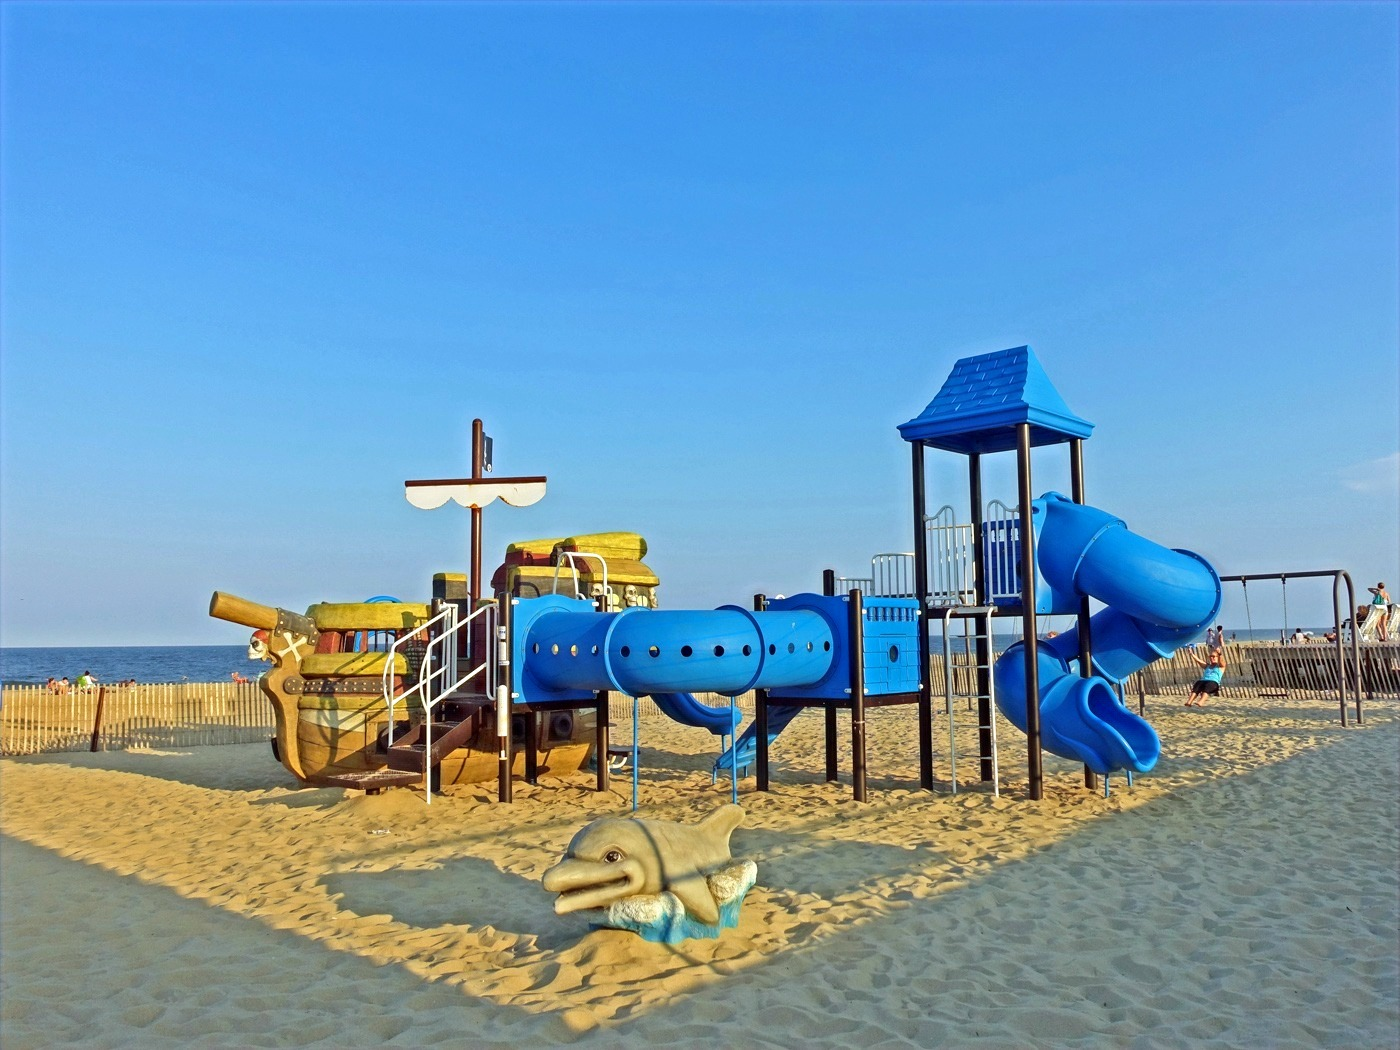 Beachfront Playgrounds